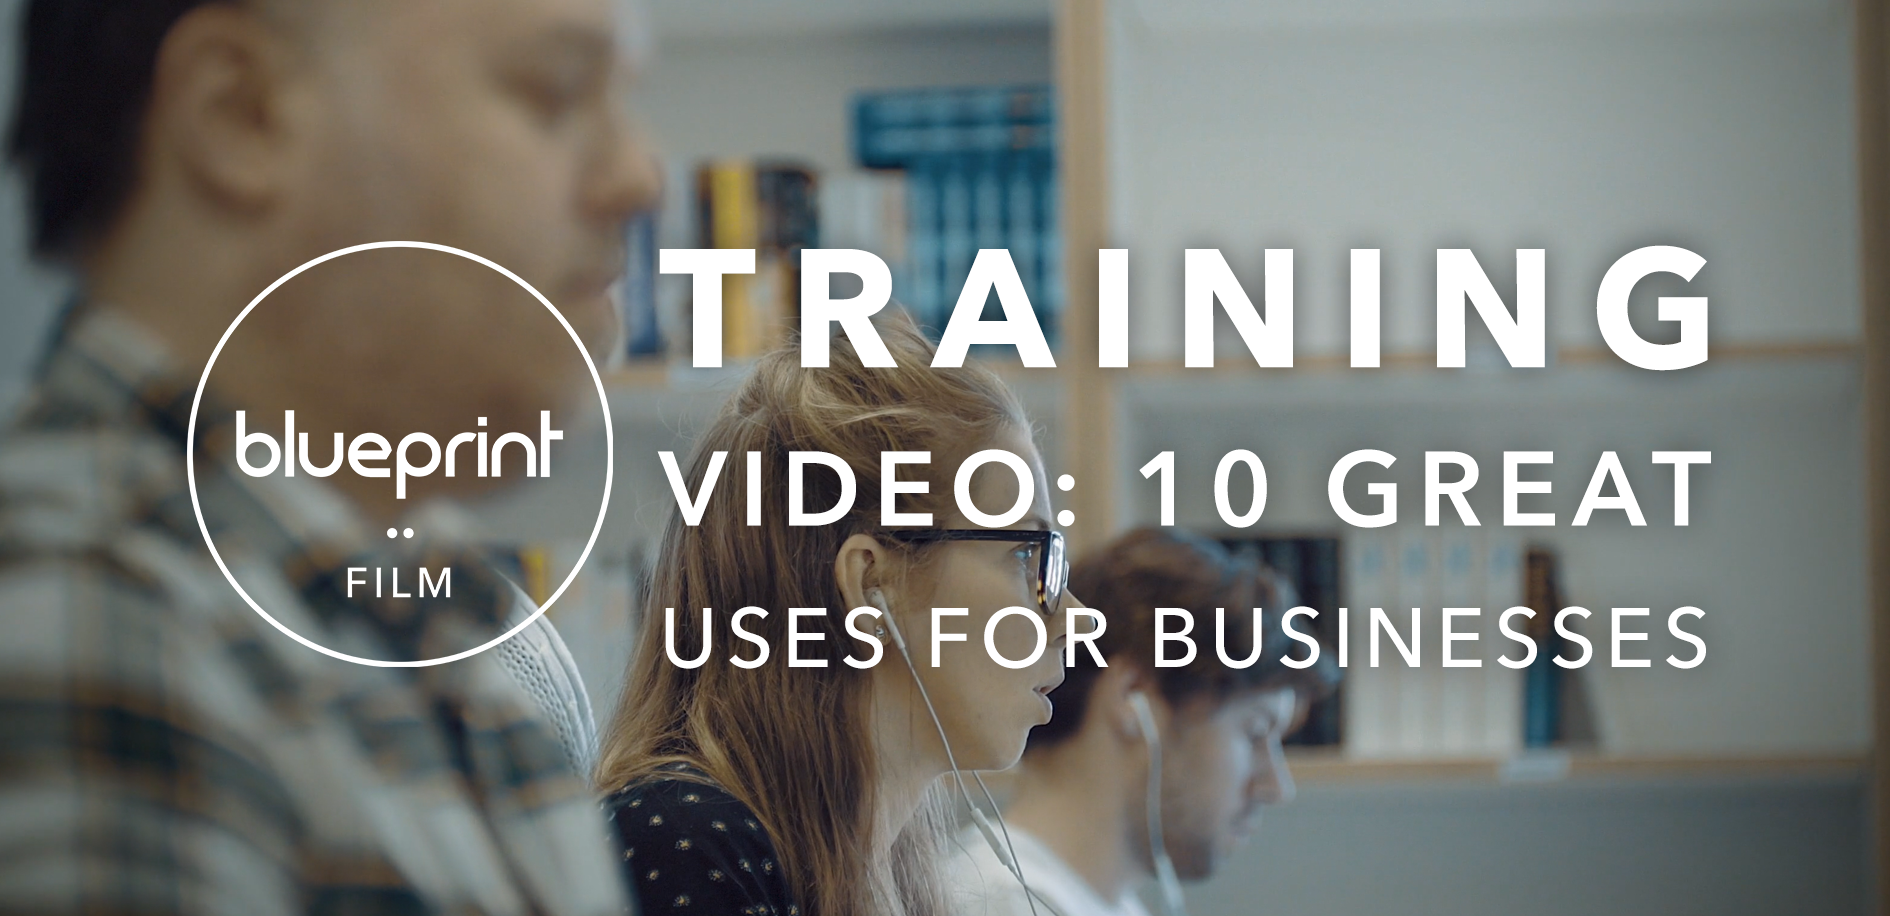 Training video: 10 great uses for businesses